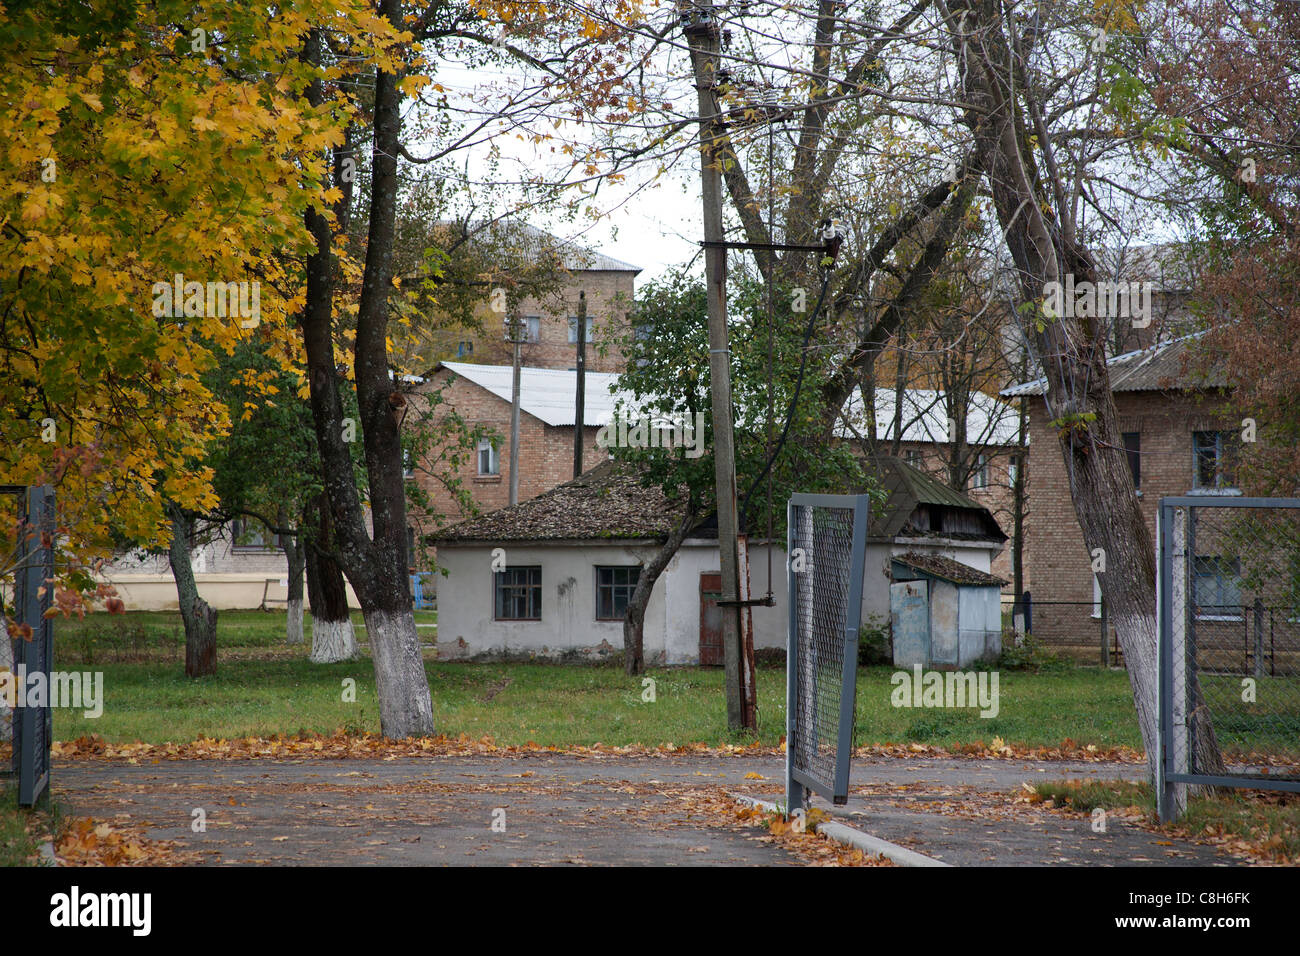 Houses and outbuildings within the Chernobyl 30km exclusion zone, Chernobyl Ukraine - Stock Image